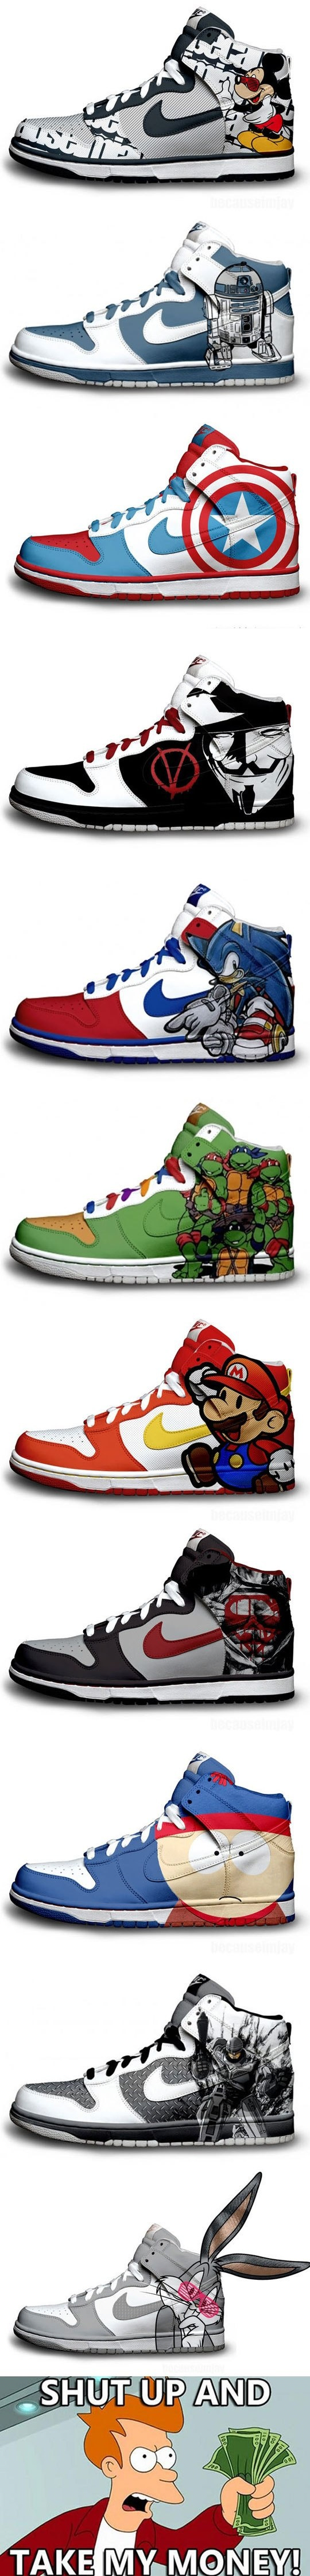 Awesome, cool Nike Sneakers